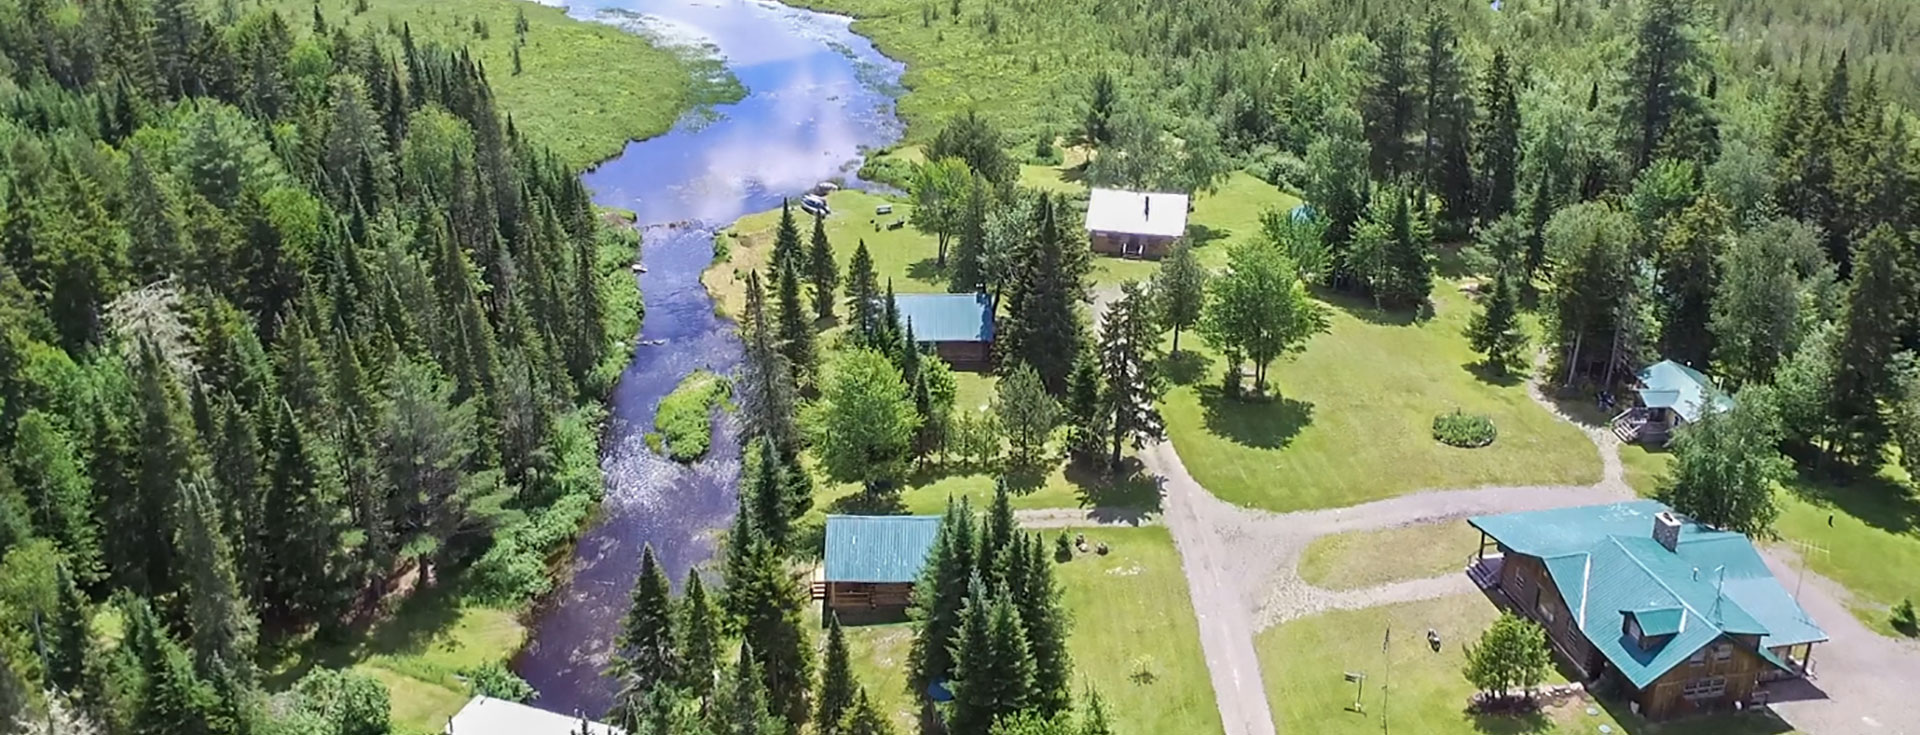 Northern Maine Cabin Rentals - Family Vacations - Hunting